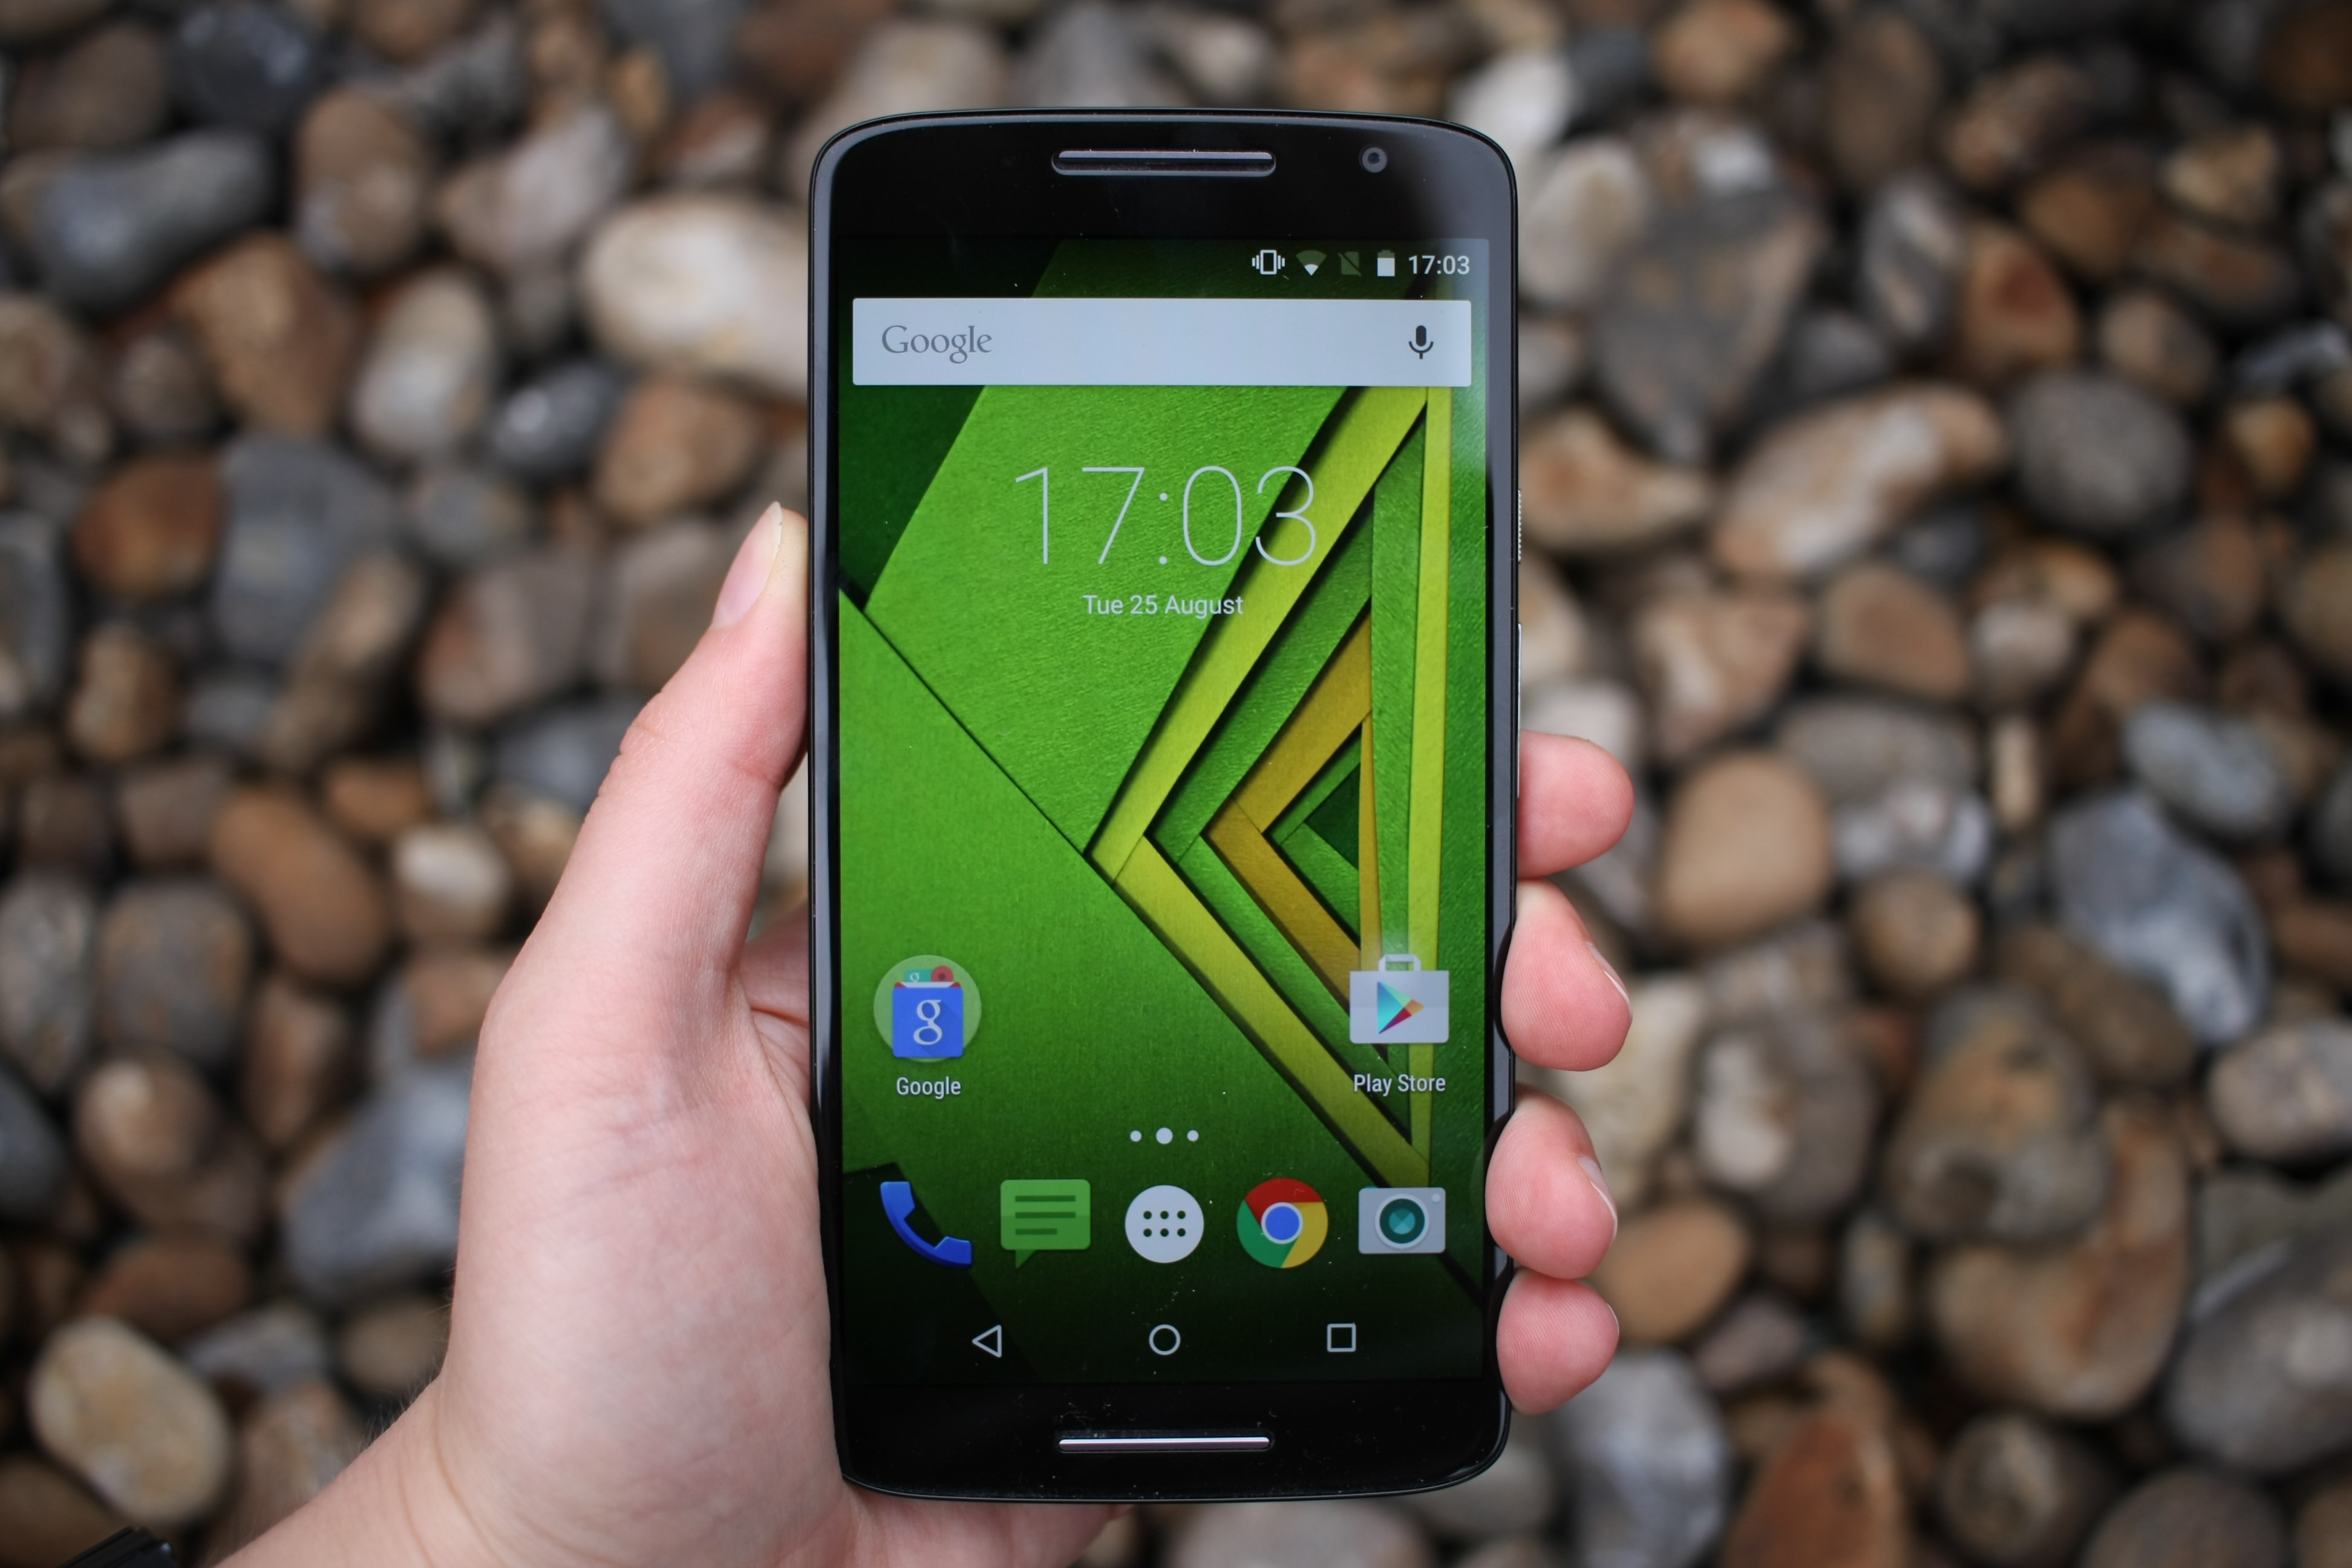 Moto z moto z play now available in india price specifications and - Moto X Play In Hand